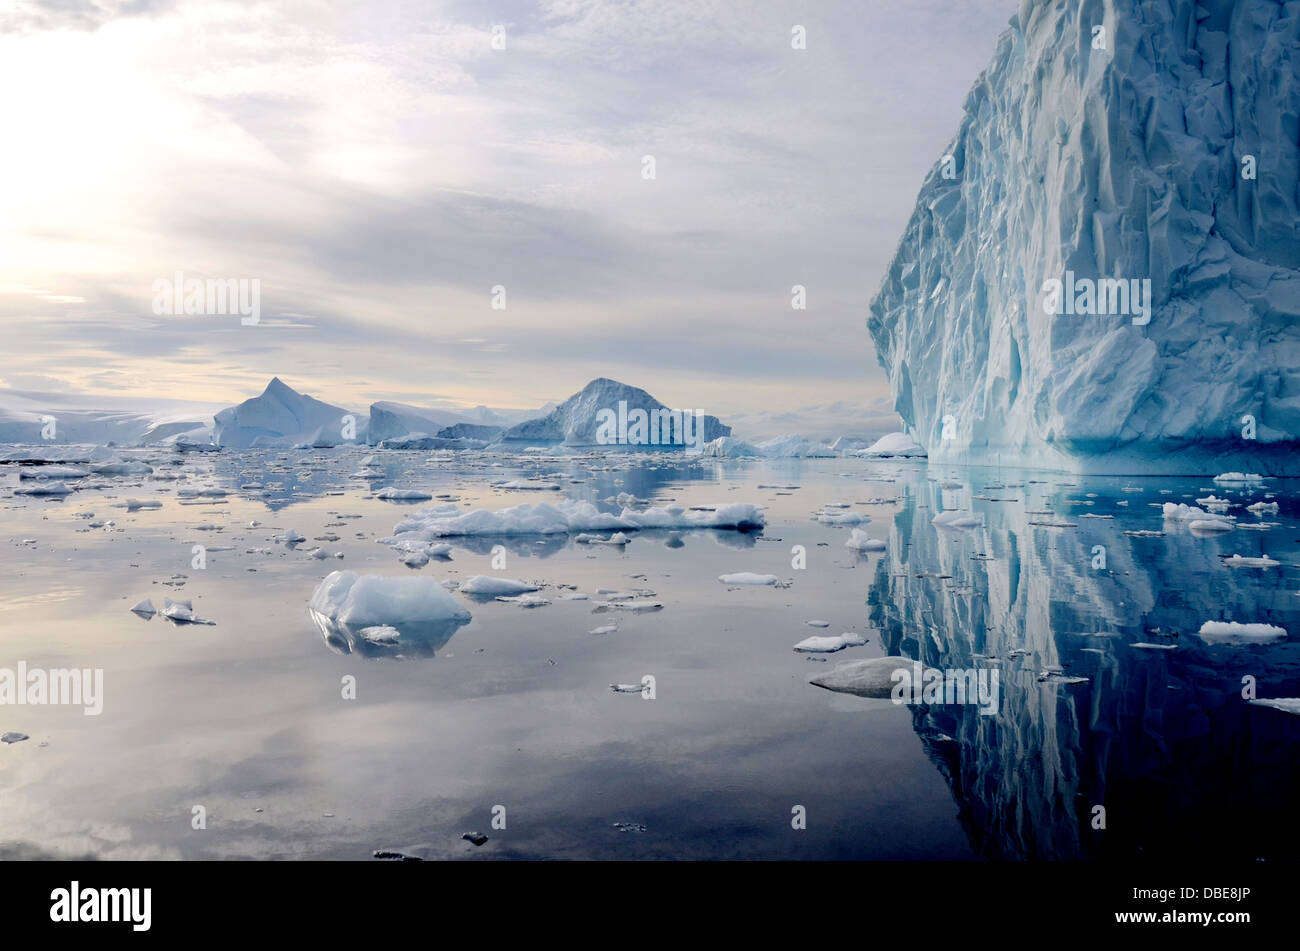 Glaciers and ice bergs float in the Antarctic Sea near Neko Harbor, Antarctica - Stock Image